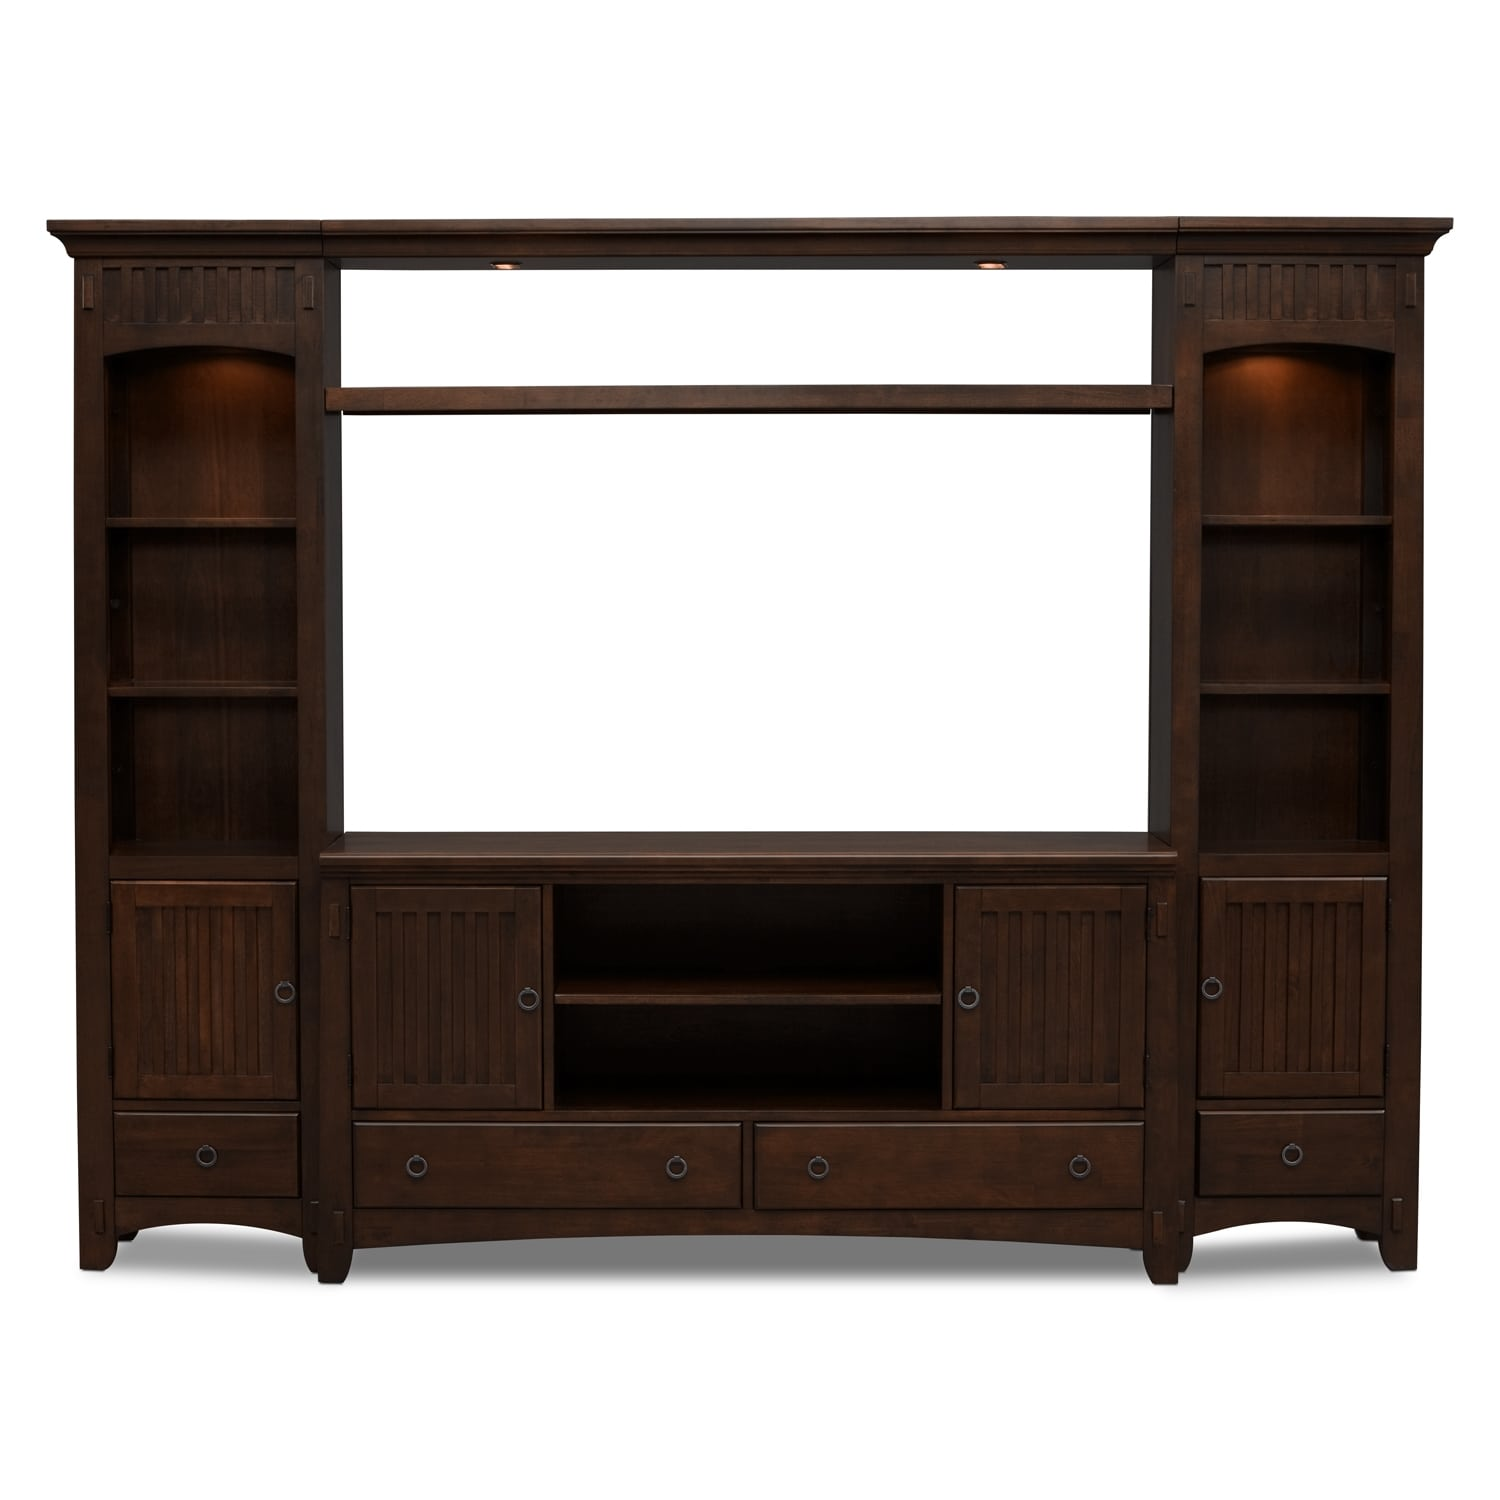 Furniture Com: Arts & Crafts 4-Piece Entertainment Wall Unit